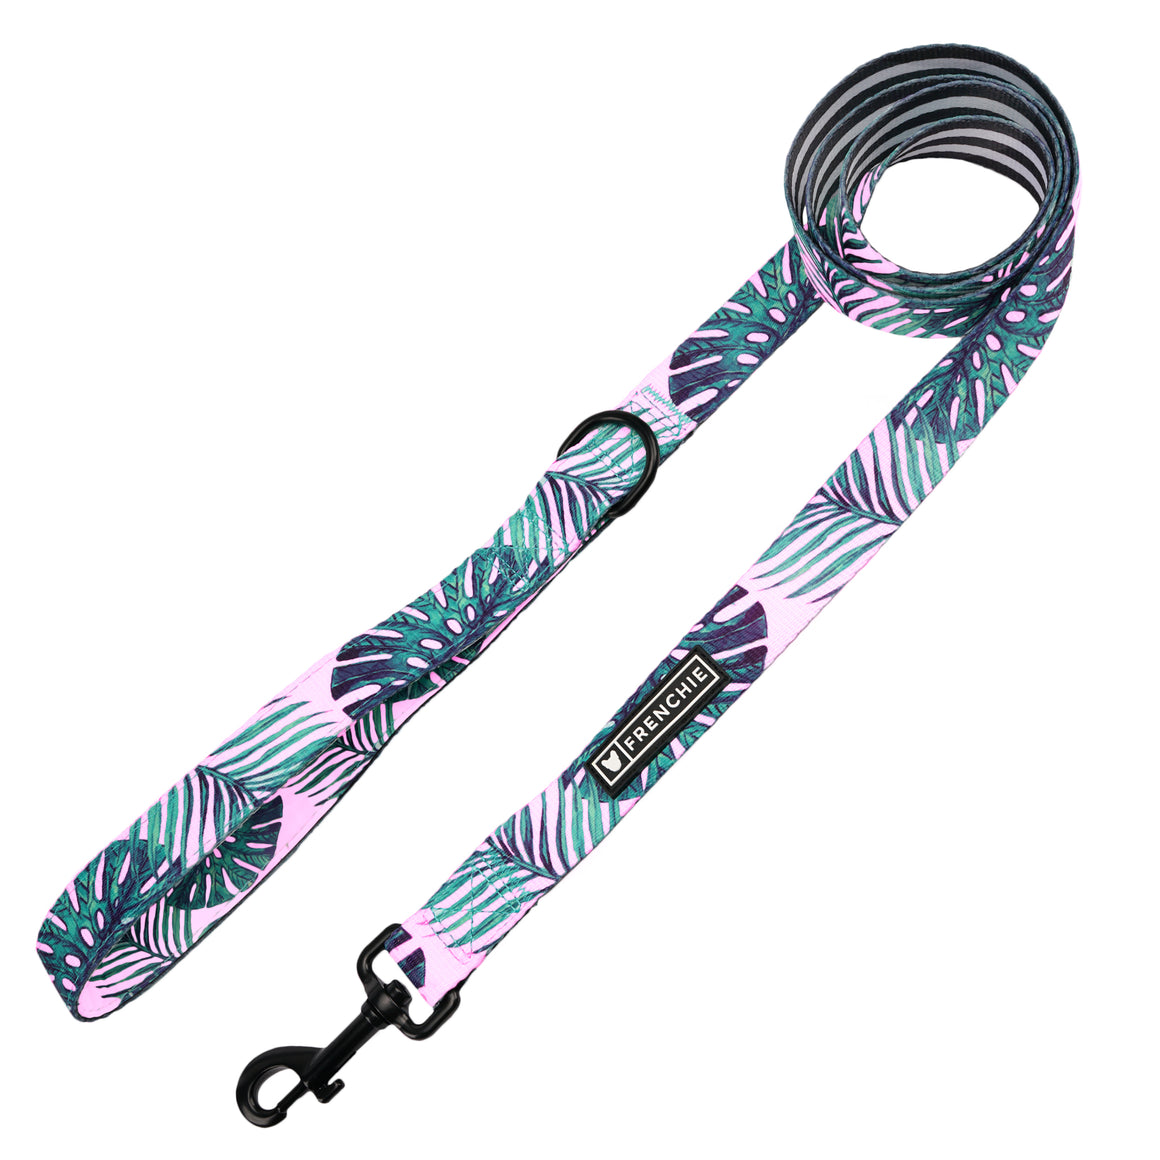 Frenchie Comfort Leash - Pink Beverly Palms - Frenchie Bulldog - Shop Harnesses for French Bulldogs - Shop French Bulldog Harness - Harnesses for Pugs